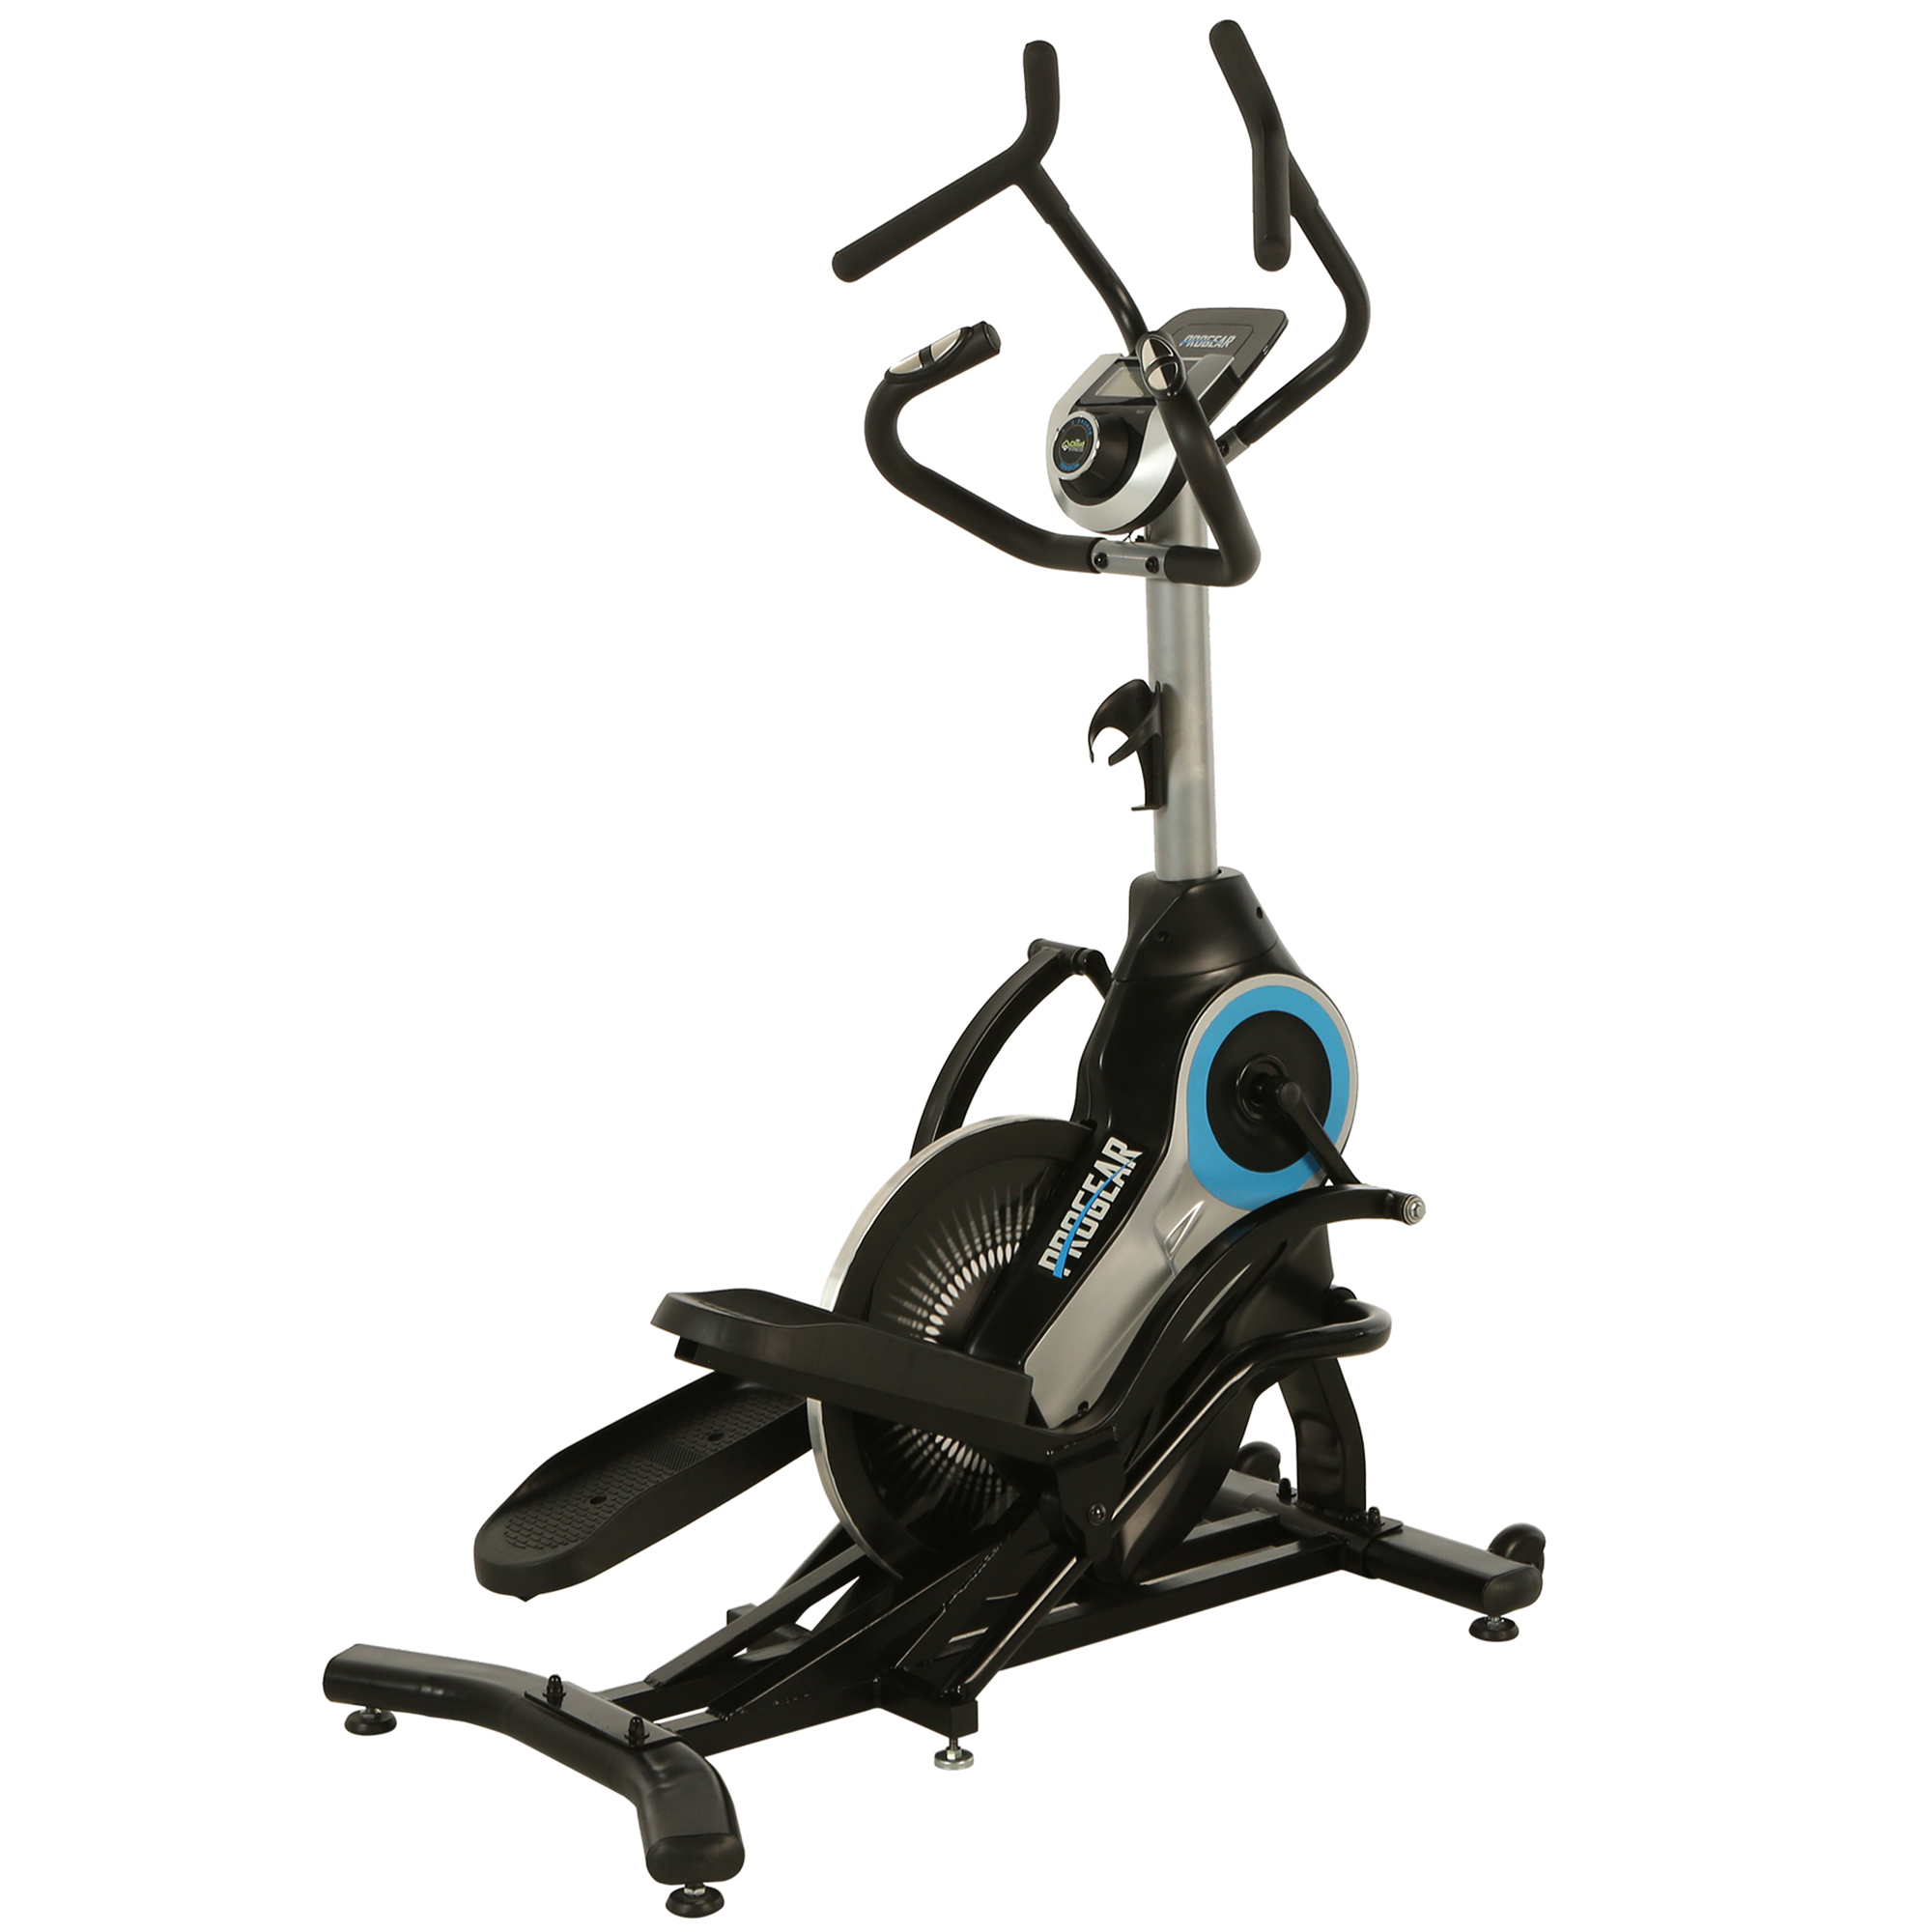 PROGEAR Bluetooth Smart Fitness Crossover Stepper/ Elliptical Trainer